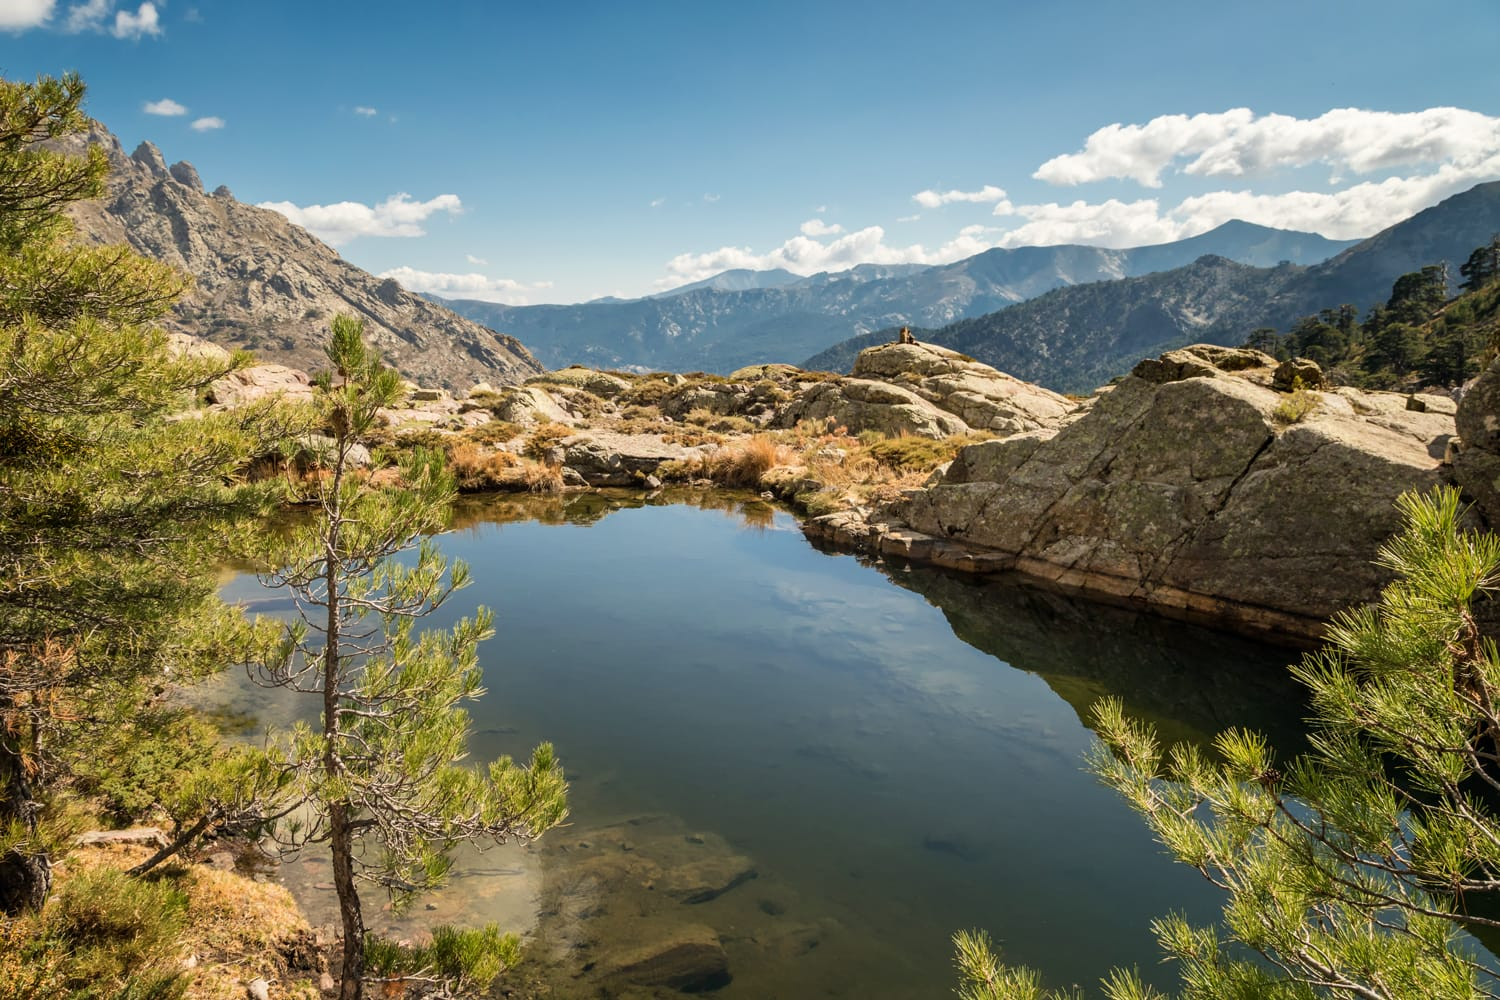 Small lake at Paglia Orba surrounded by rocks, pine trees and mountains near the GR20 hiking trail in central Corsica